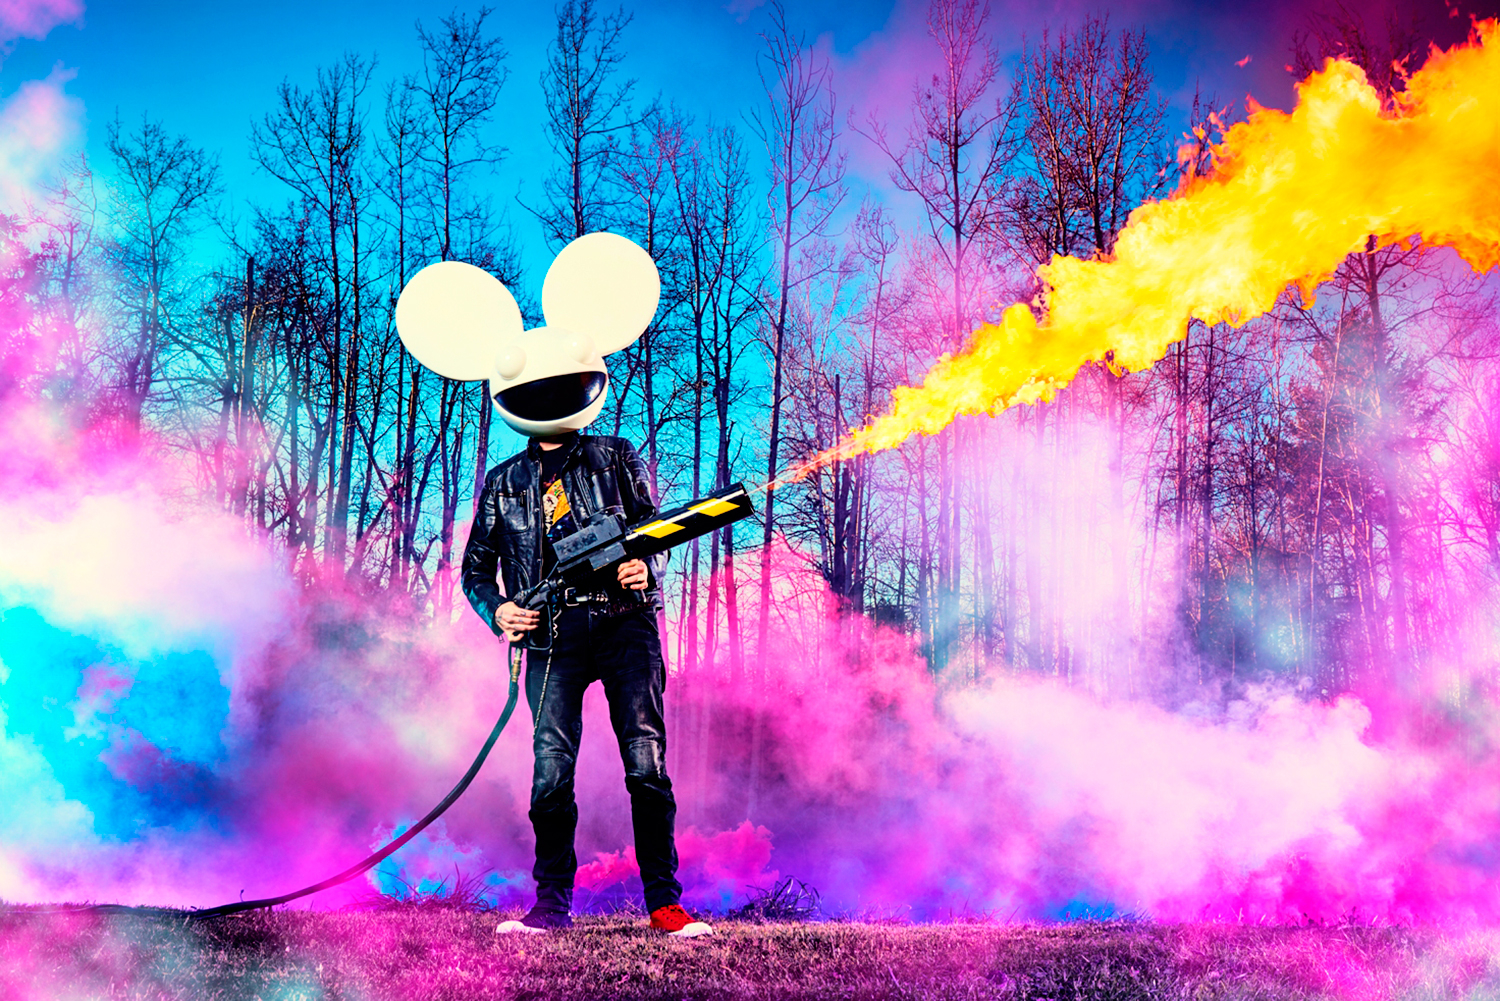 rs-deadmau5-01-9469f02f-f4ac-4a45-afb0-6